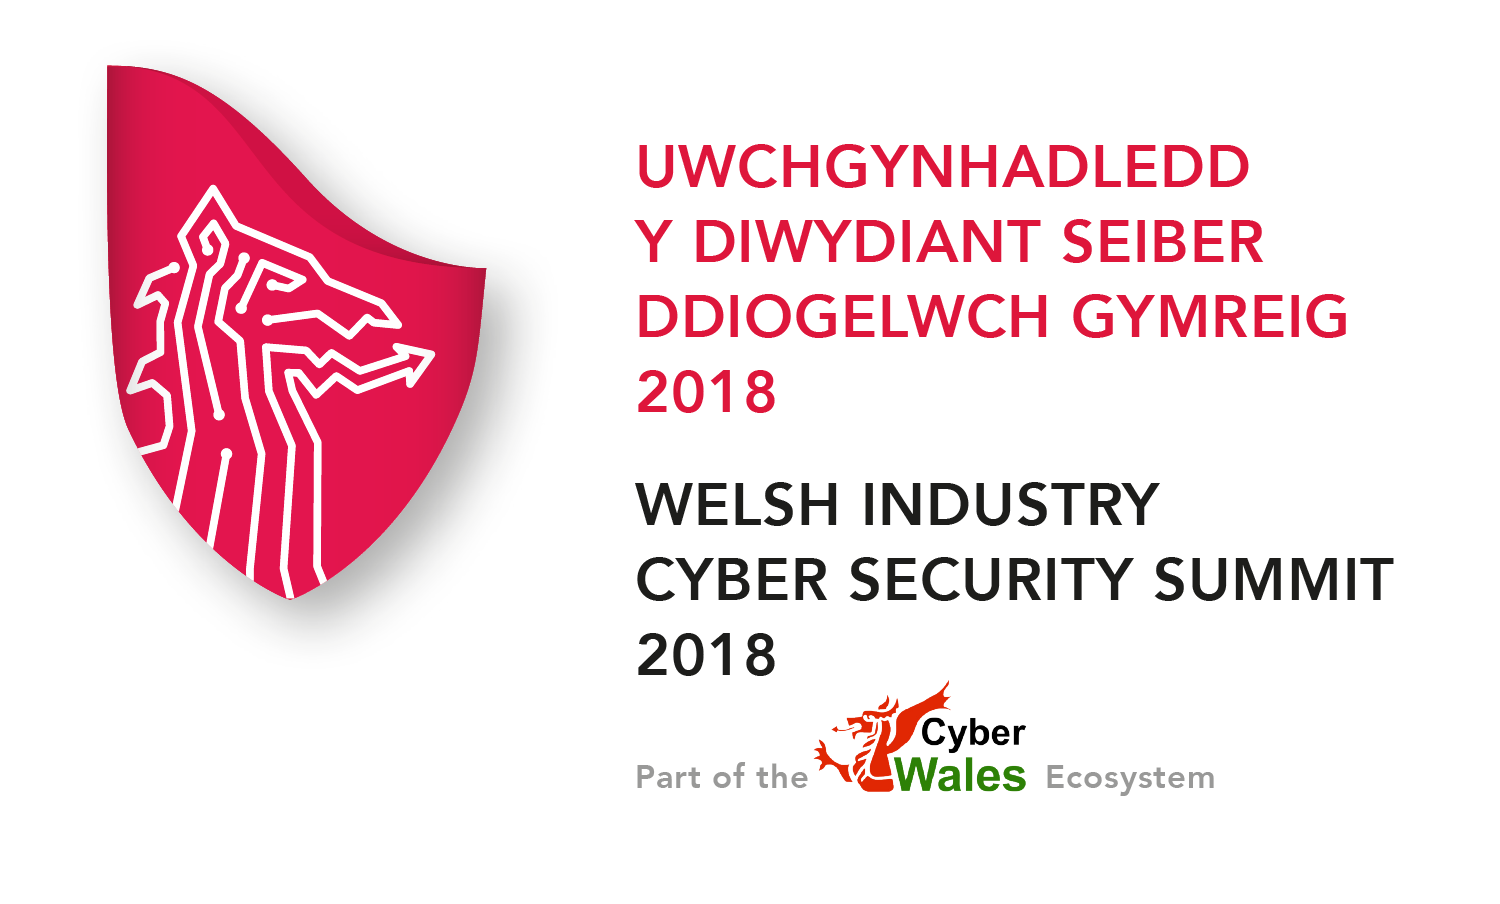 Cyber_Security_Summit_Logo_with_Cyber_Wales-01.png